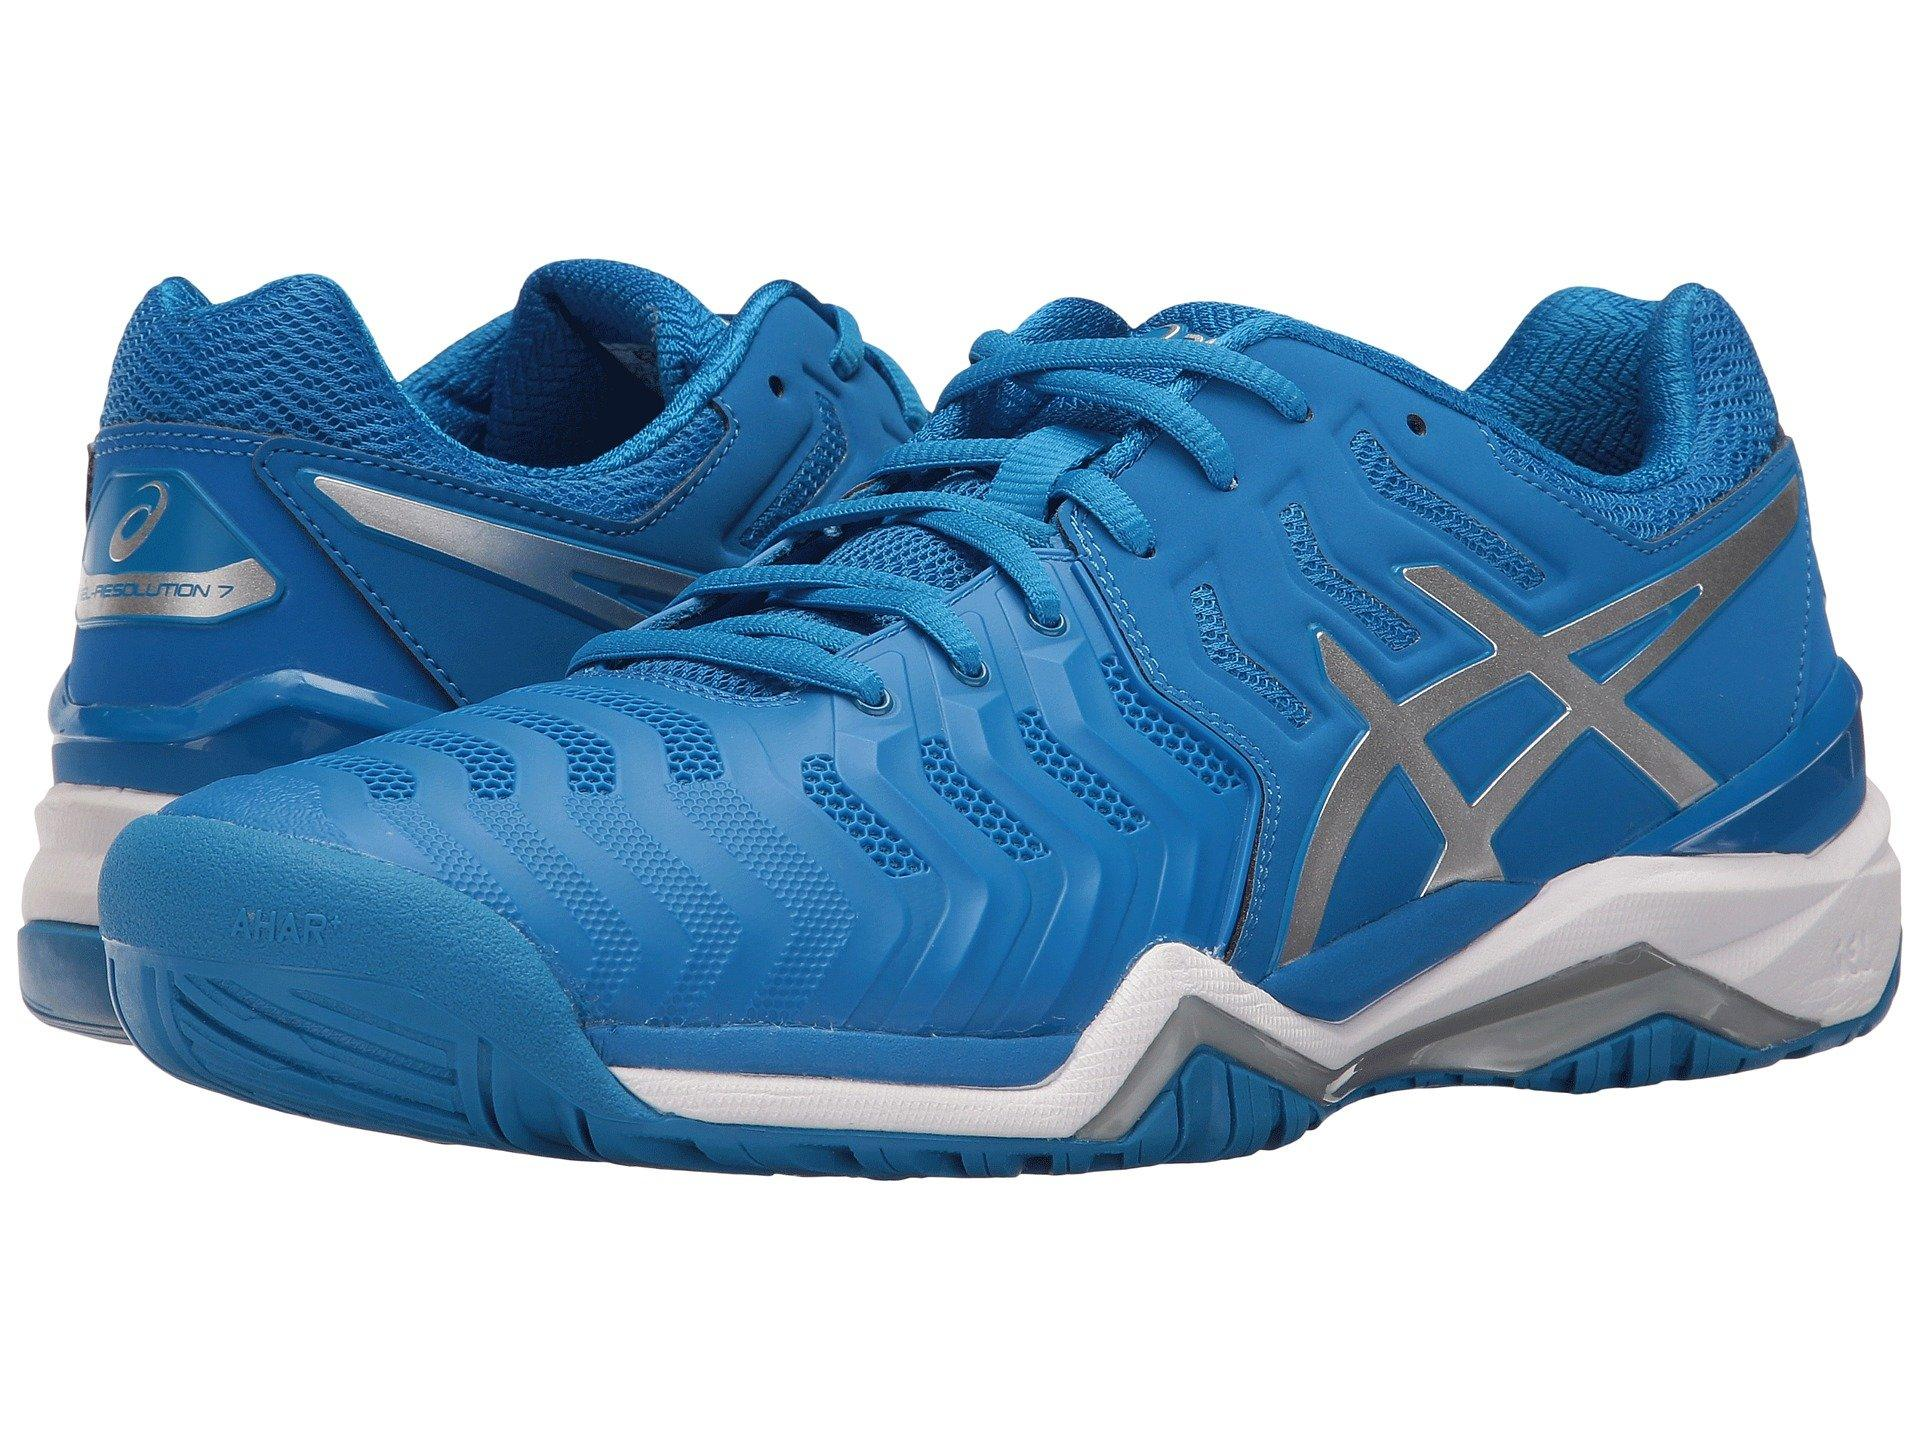 Asics Gel-resolution 7 In Directoire Blue/silver/white